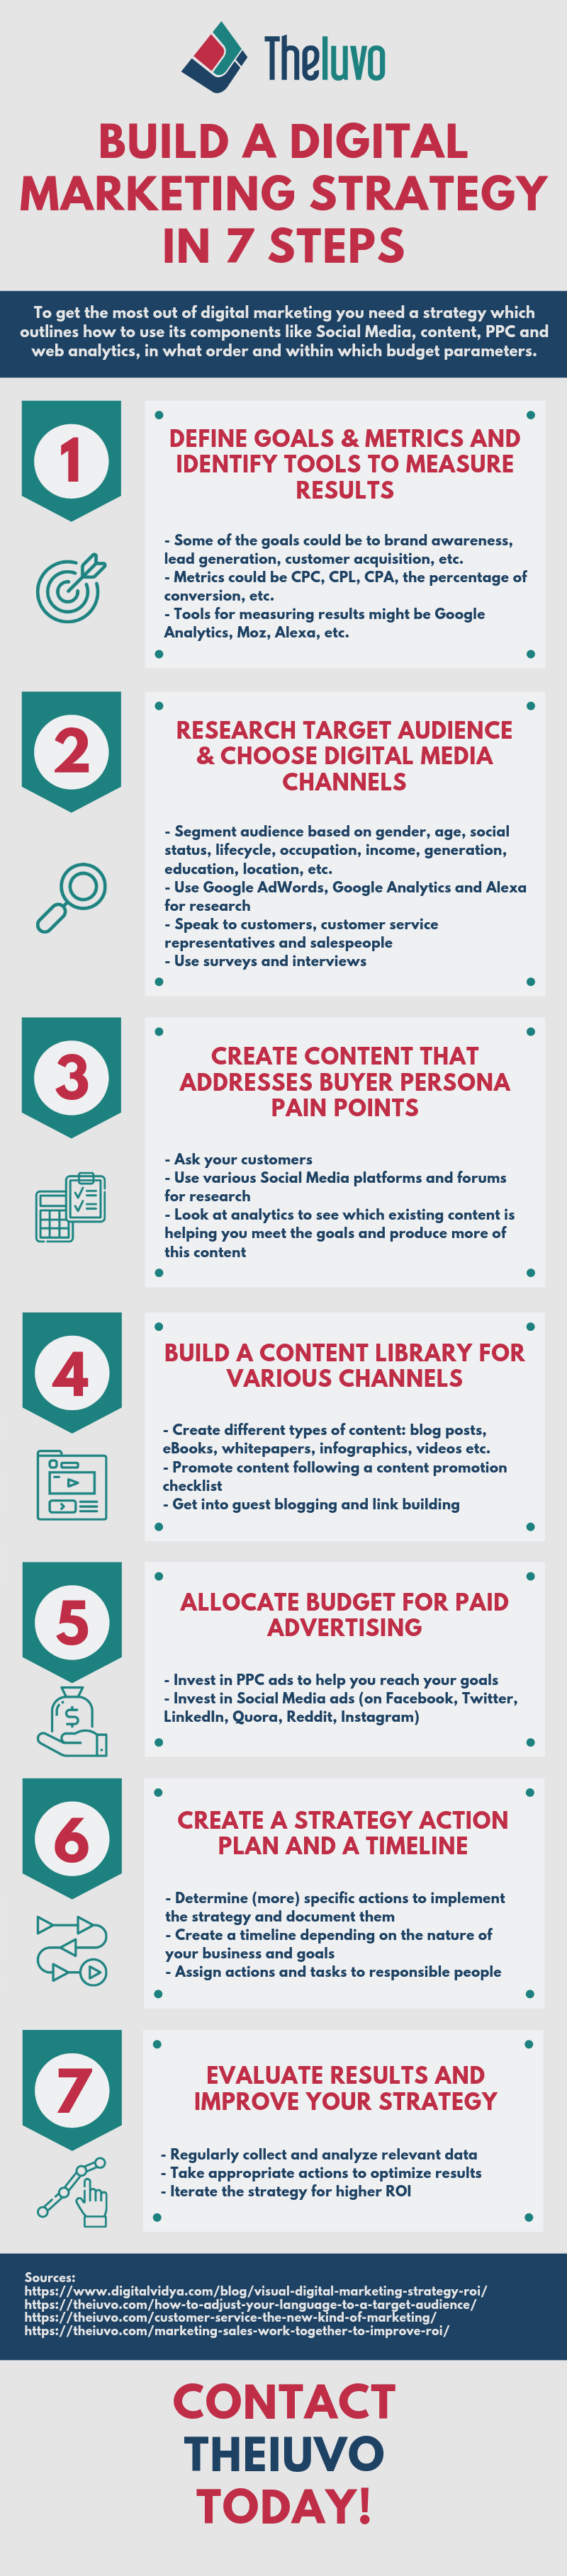 Build A Digital Marketing Strategy In 7 Steps Infographic